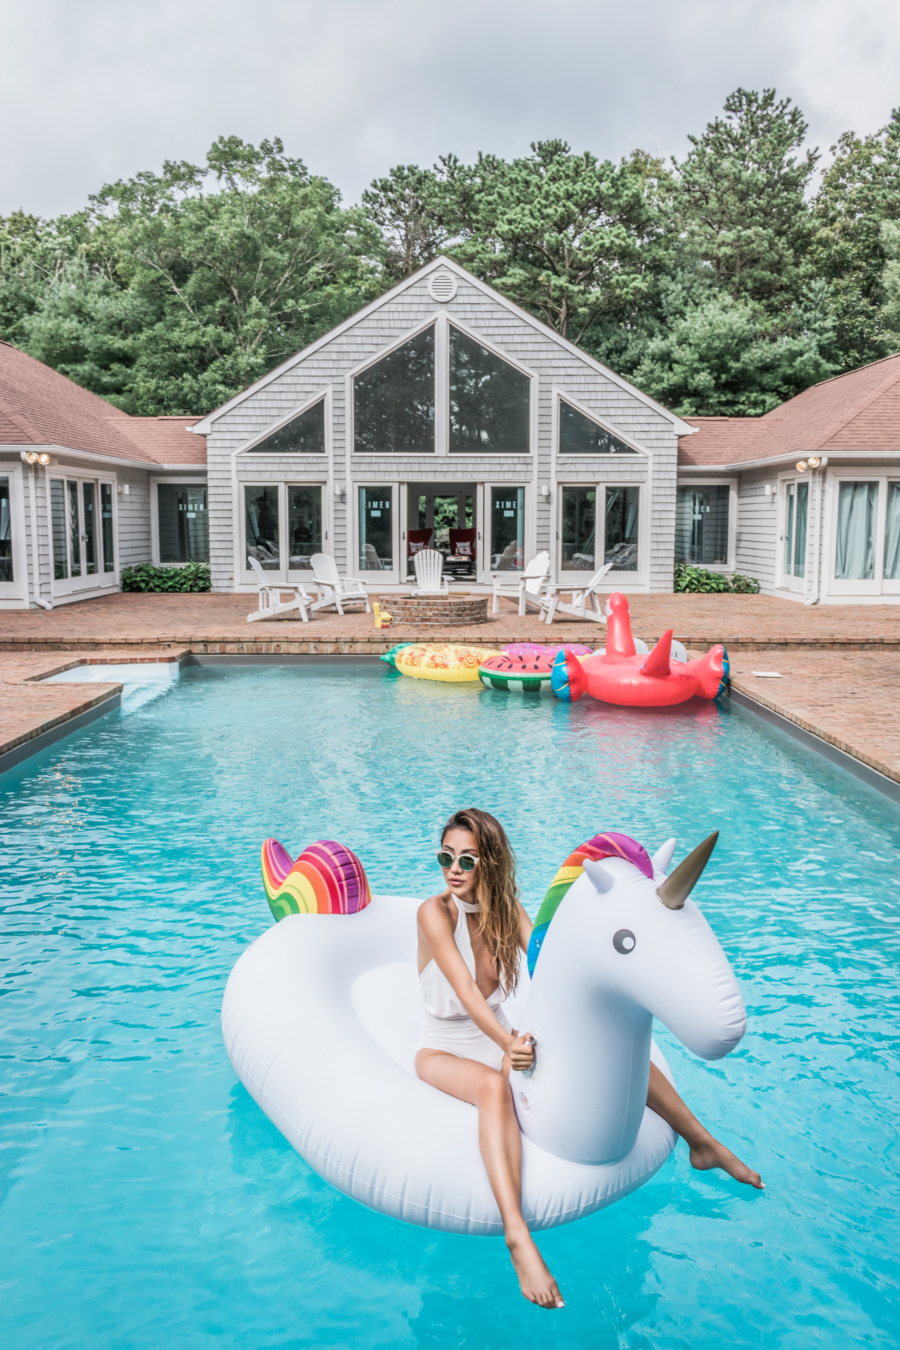 Ray-ban, Rayban, Remix, Sunglasses, Hamptons, Montauk, East Hampton, Beach House, NOTJESSFASHION, NYC, Top Fashion Blogger, Lifestyle Blogger, Travel Blogger